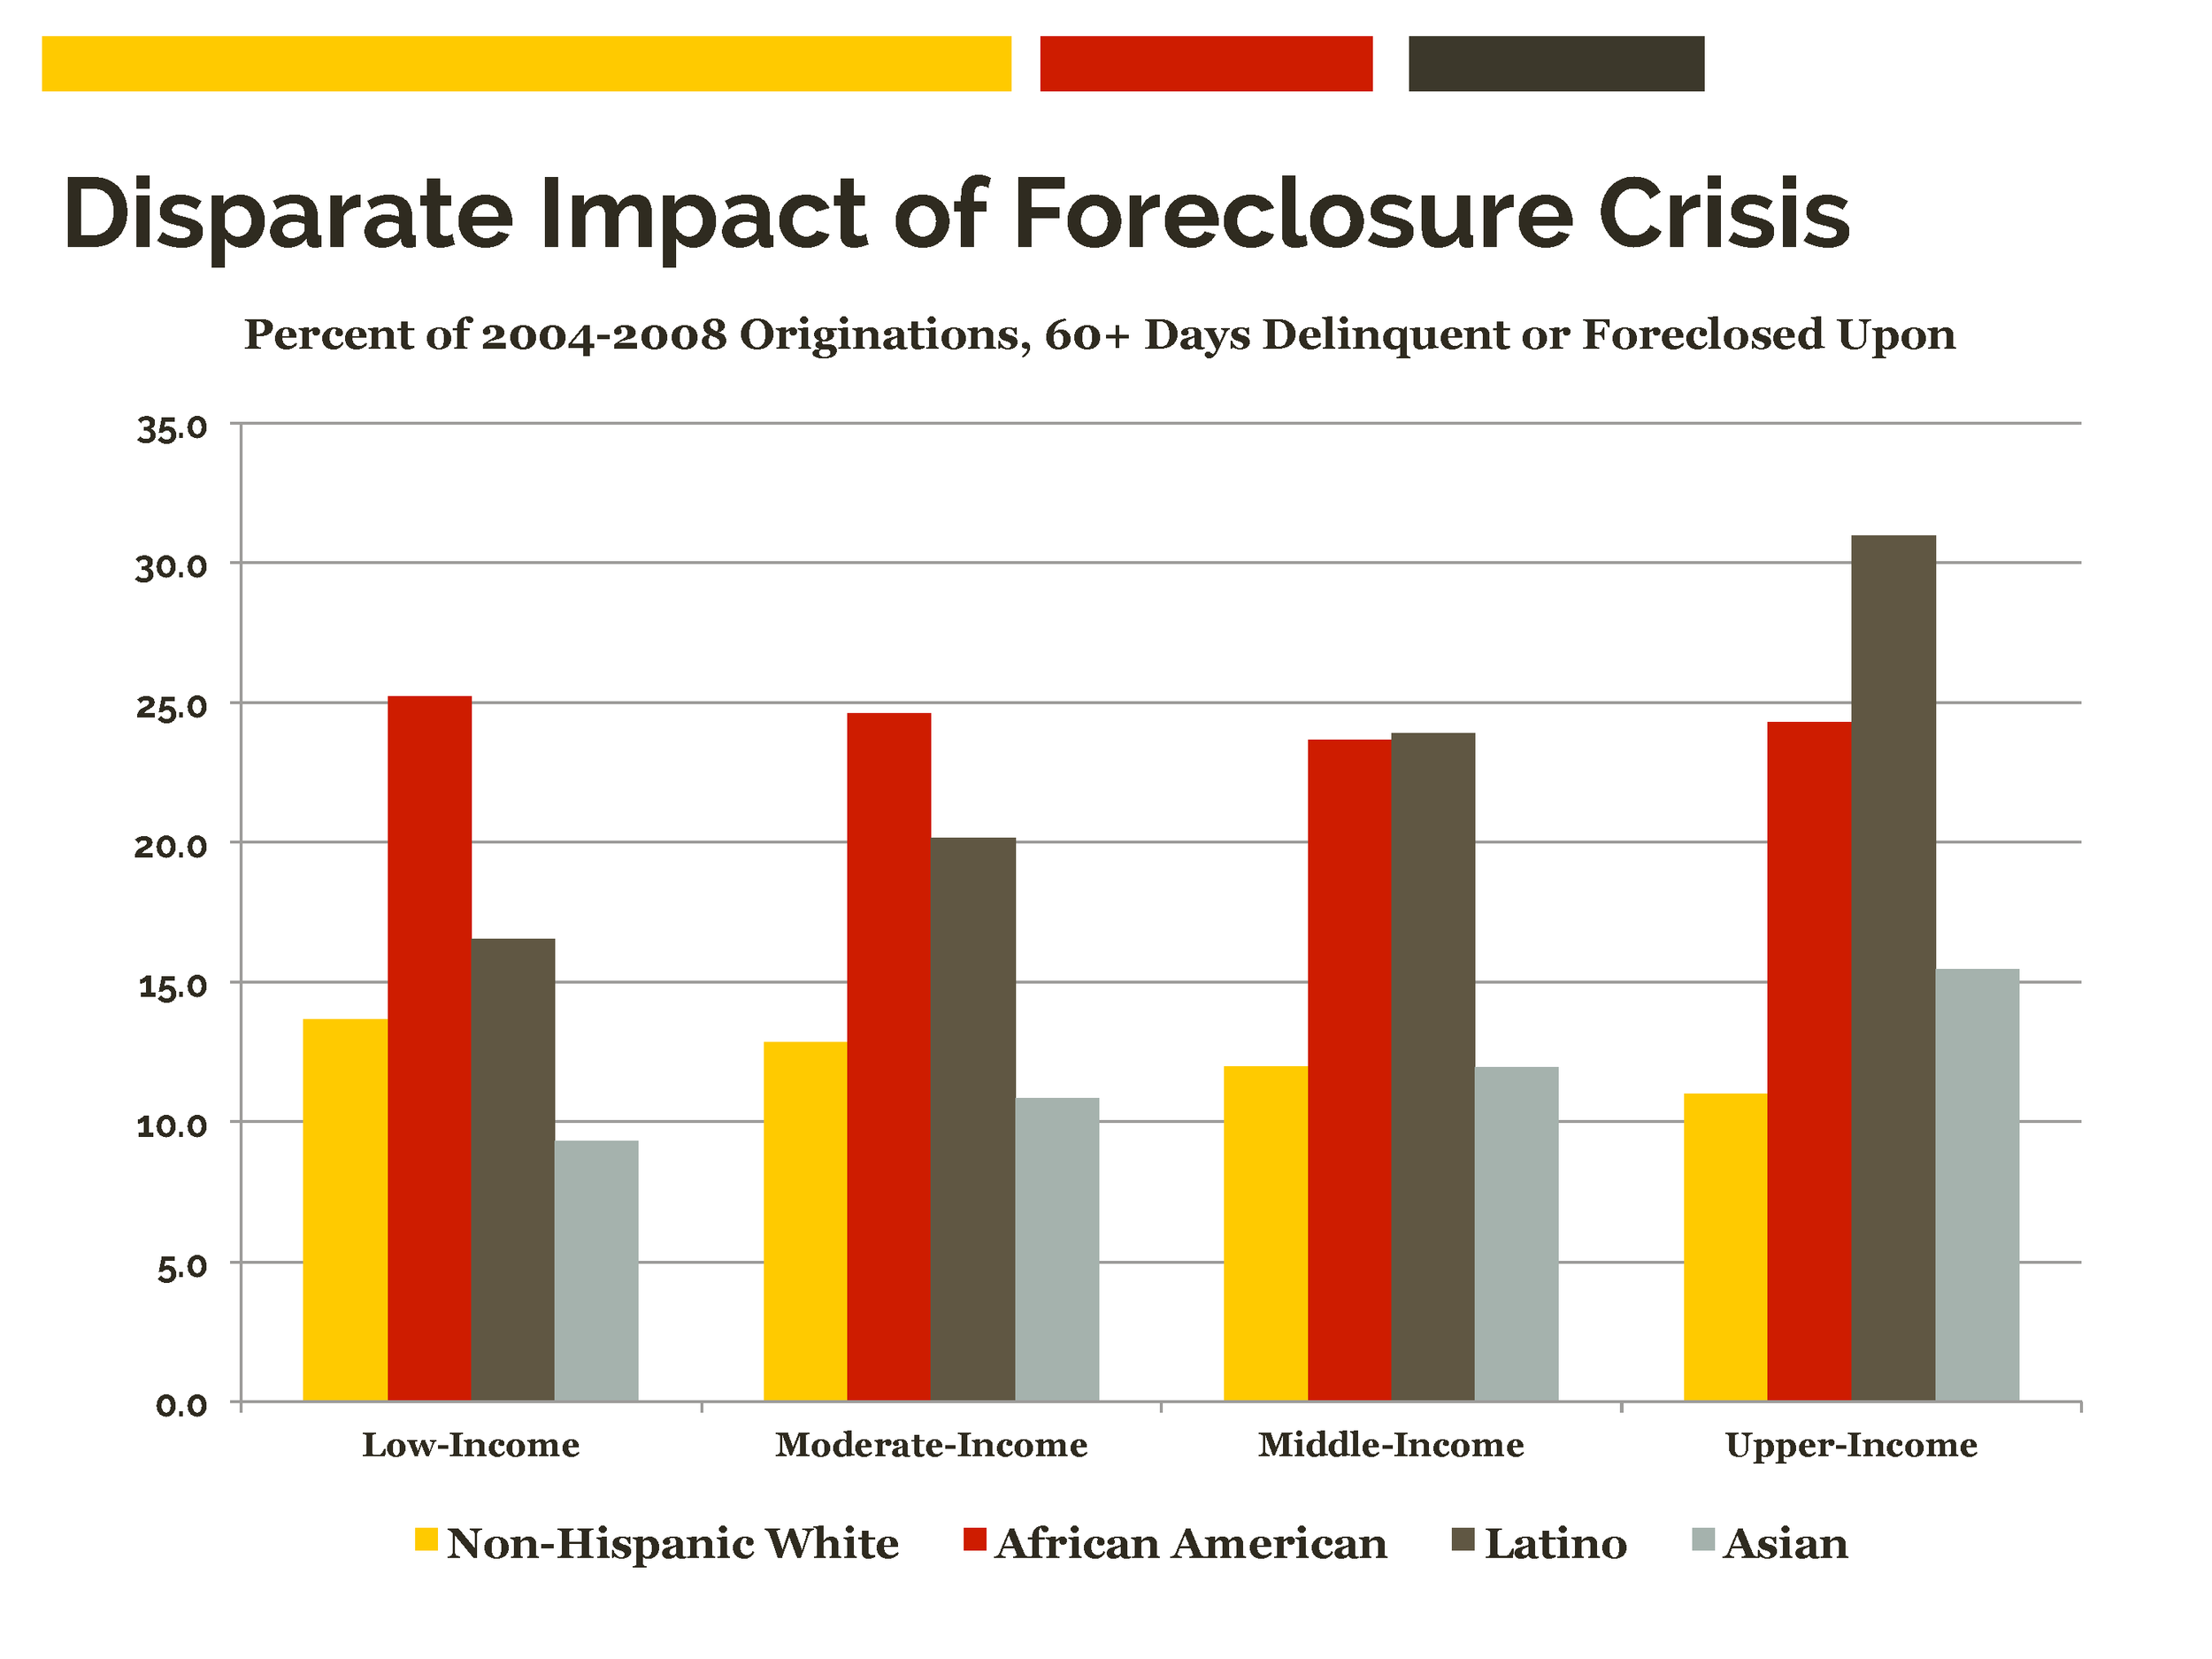 Source: Lost Ground, 2011. Center for Responsible Lending.